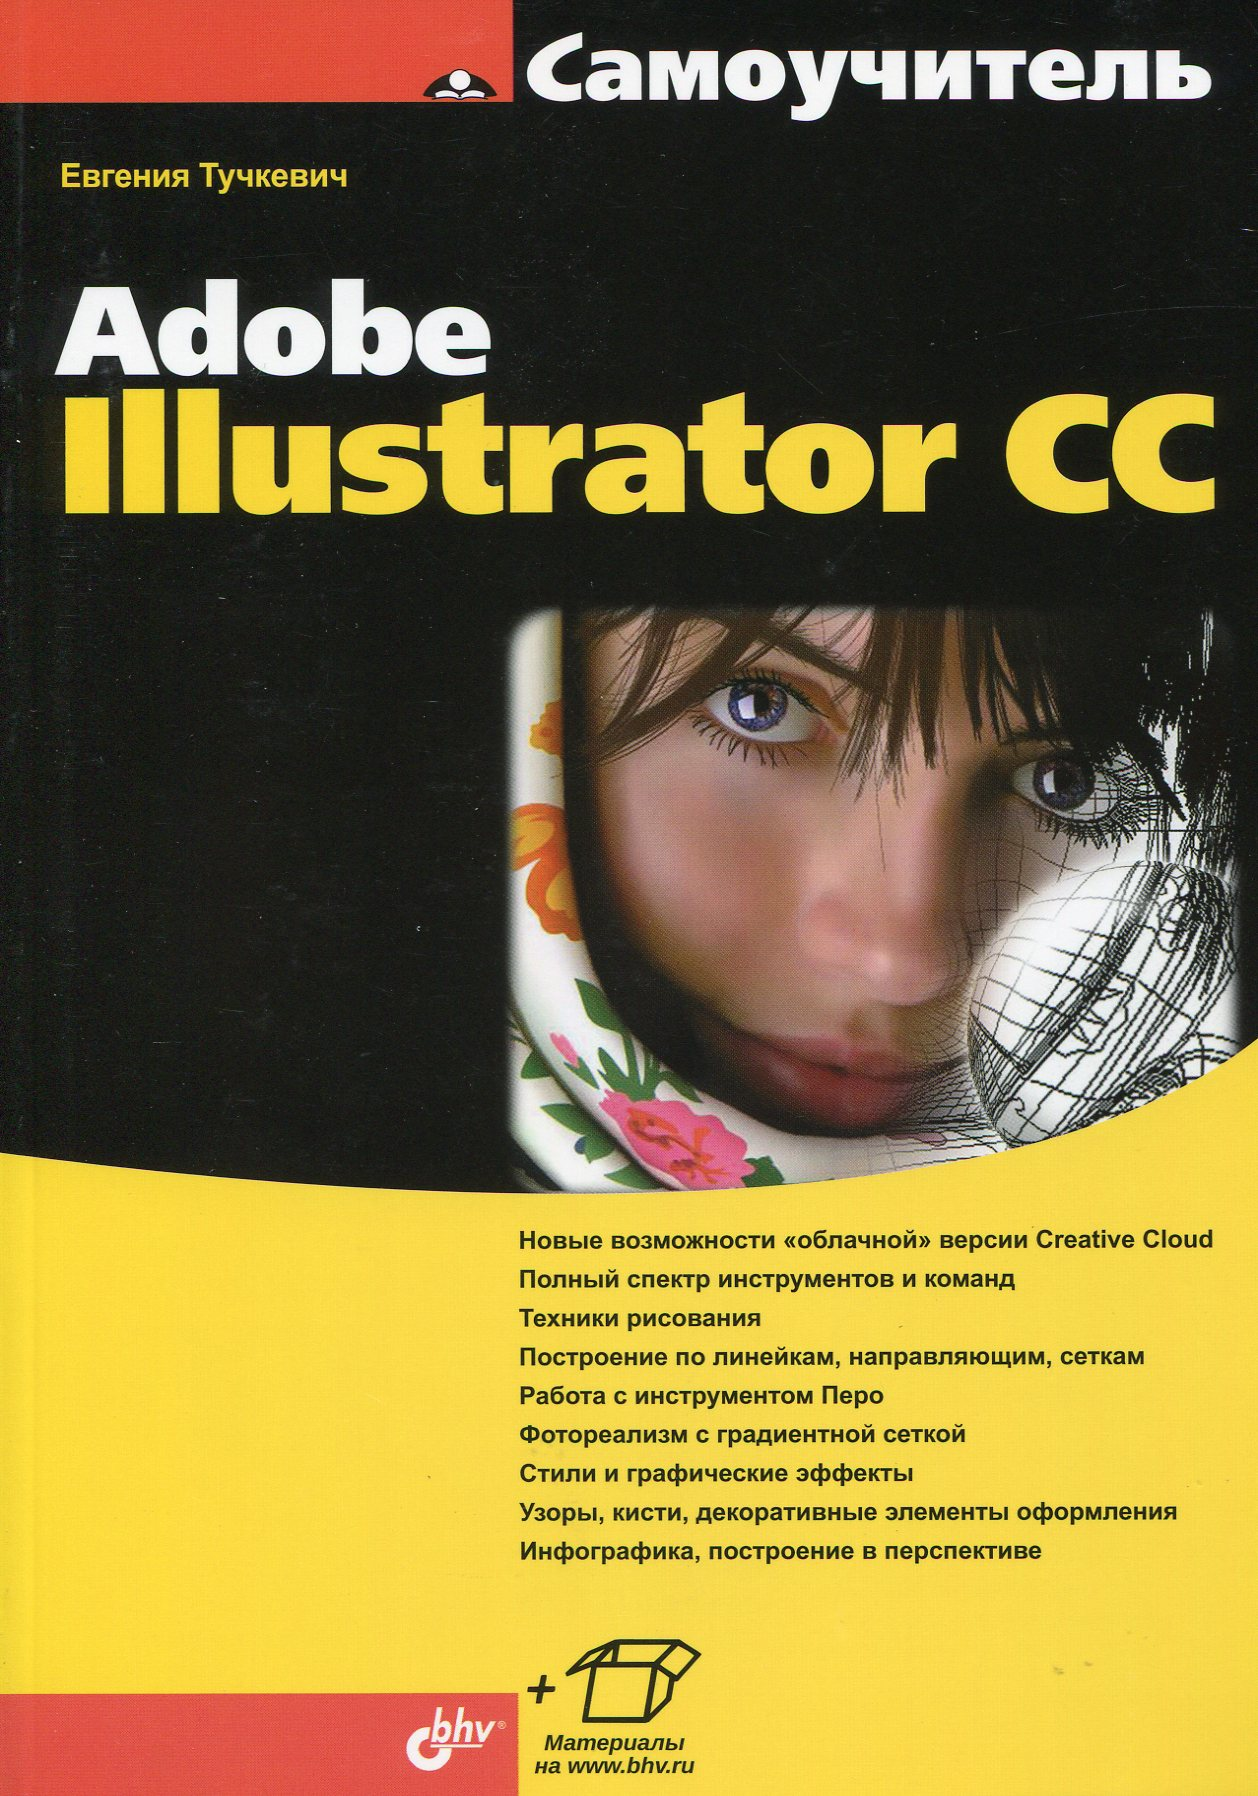 Самоучитель Adobe Illustrator CC